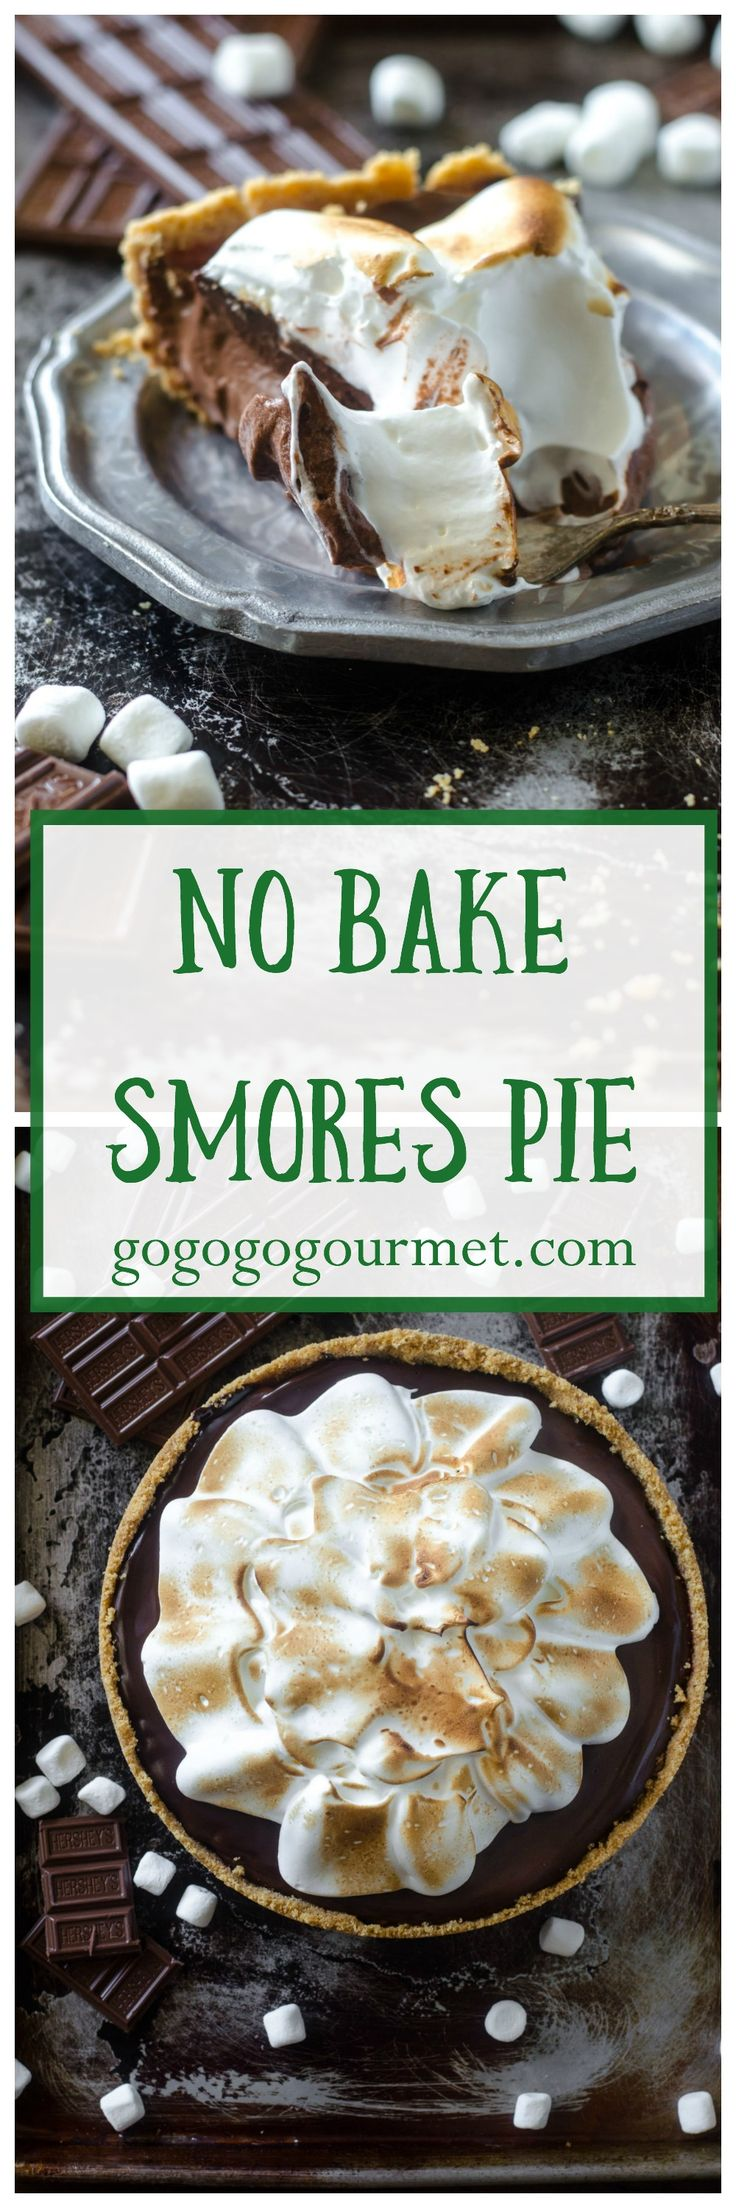 This No Bake Smores Pie is so incredible, you'll never believe that its semi-homemade! | Go Go Go Gourmet @gogogogourmet